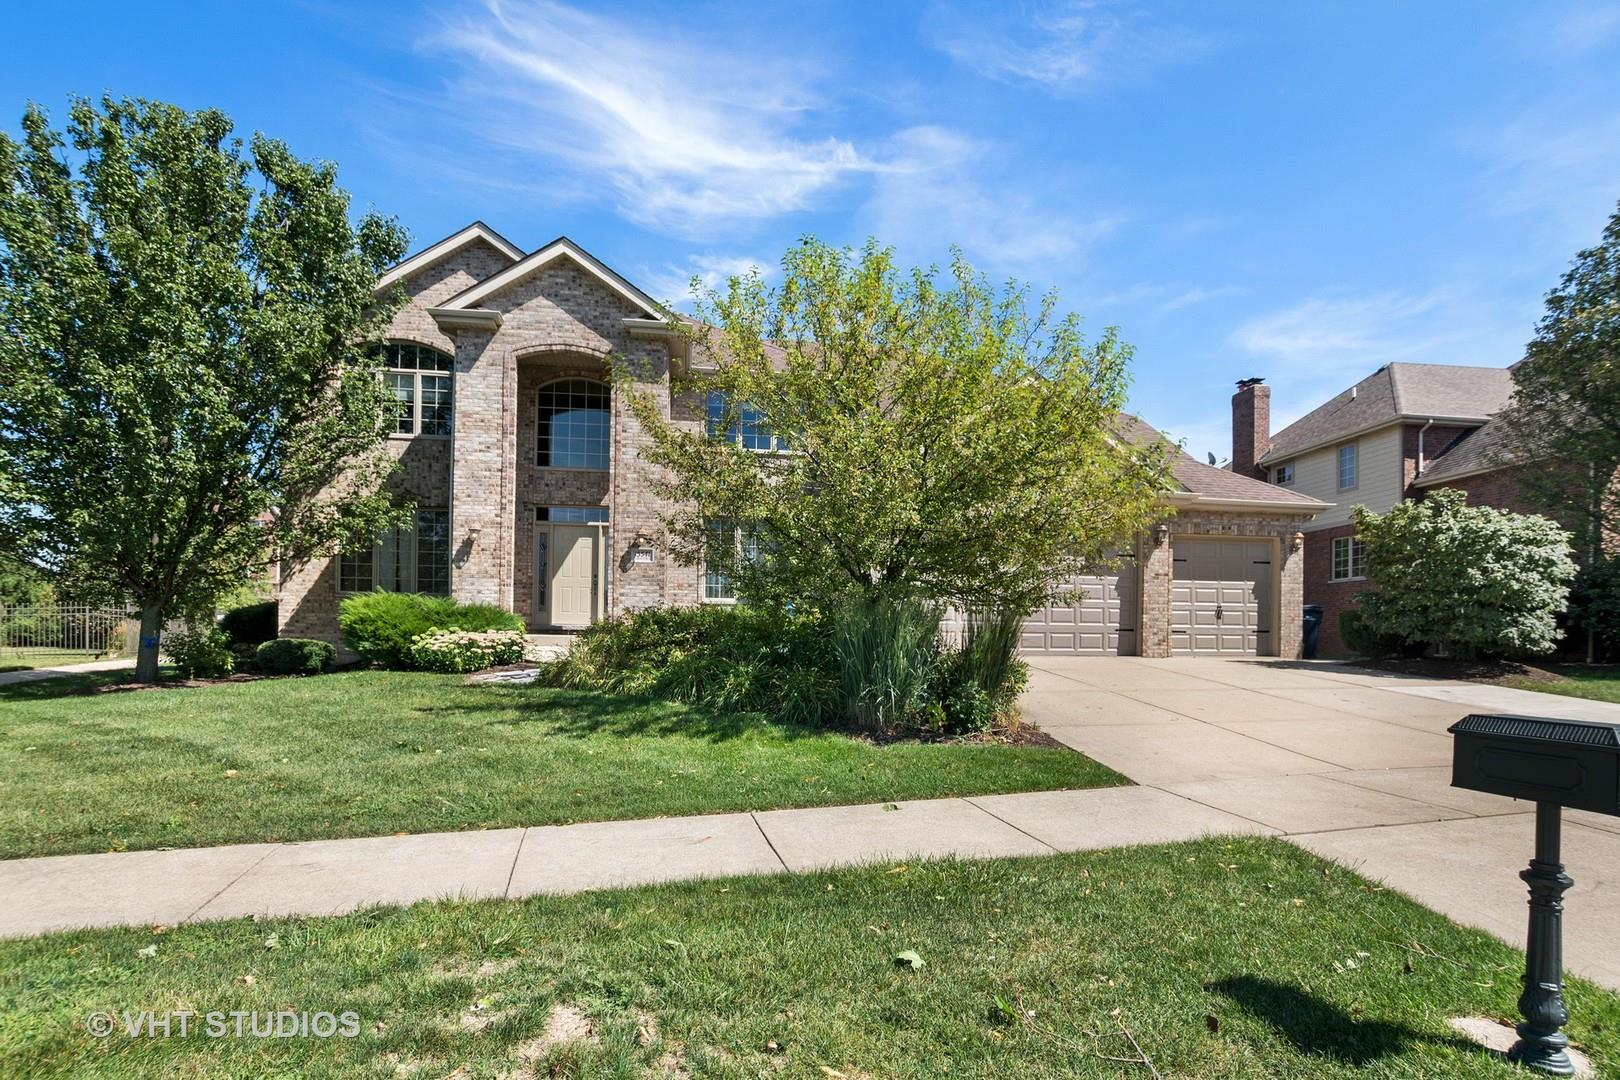 15541 JULIES Way, Orland Park, IL 60462 - #: 10936150